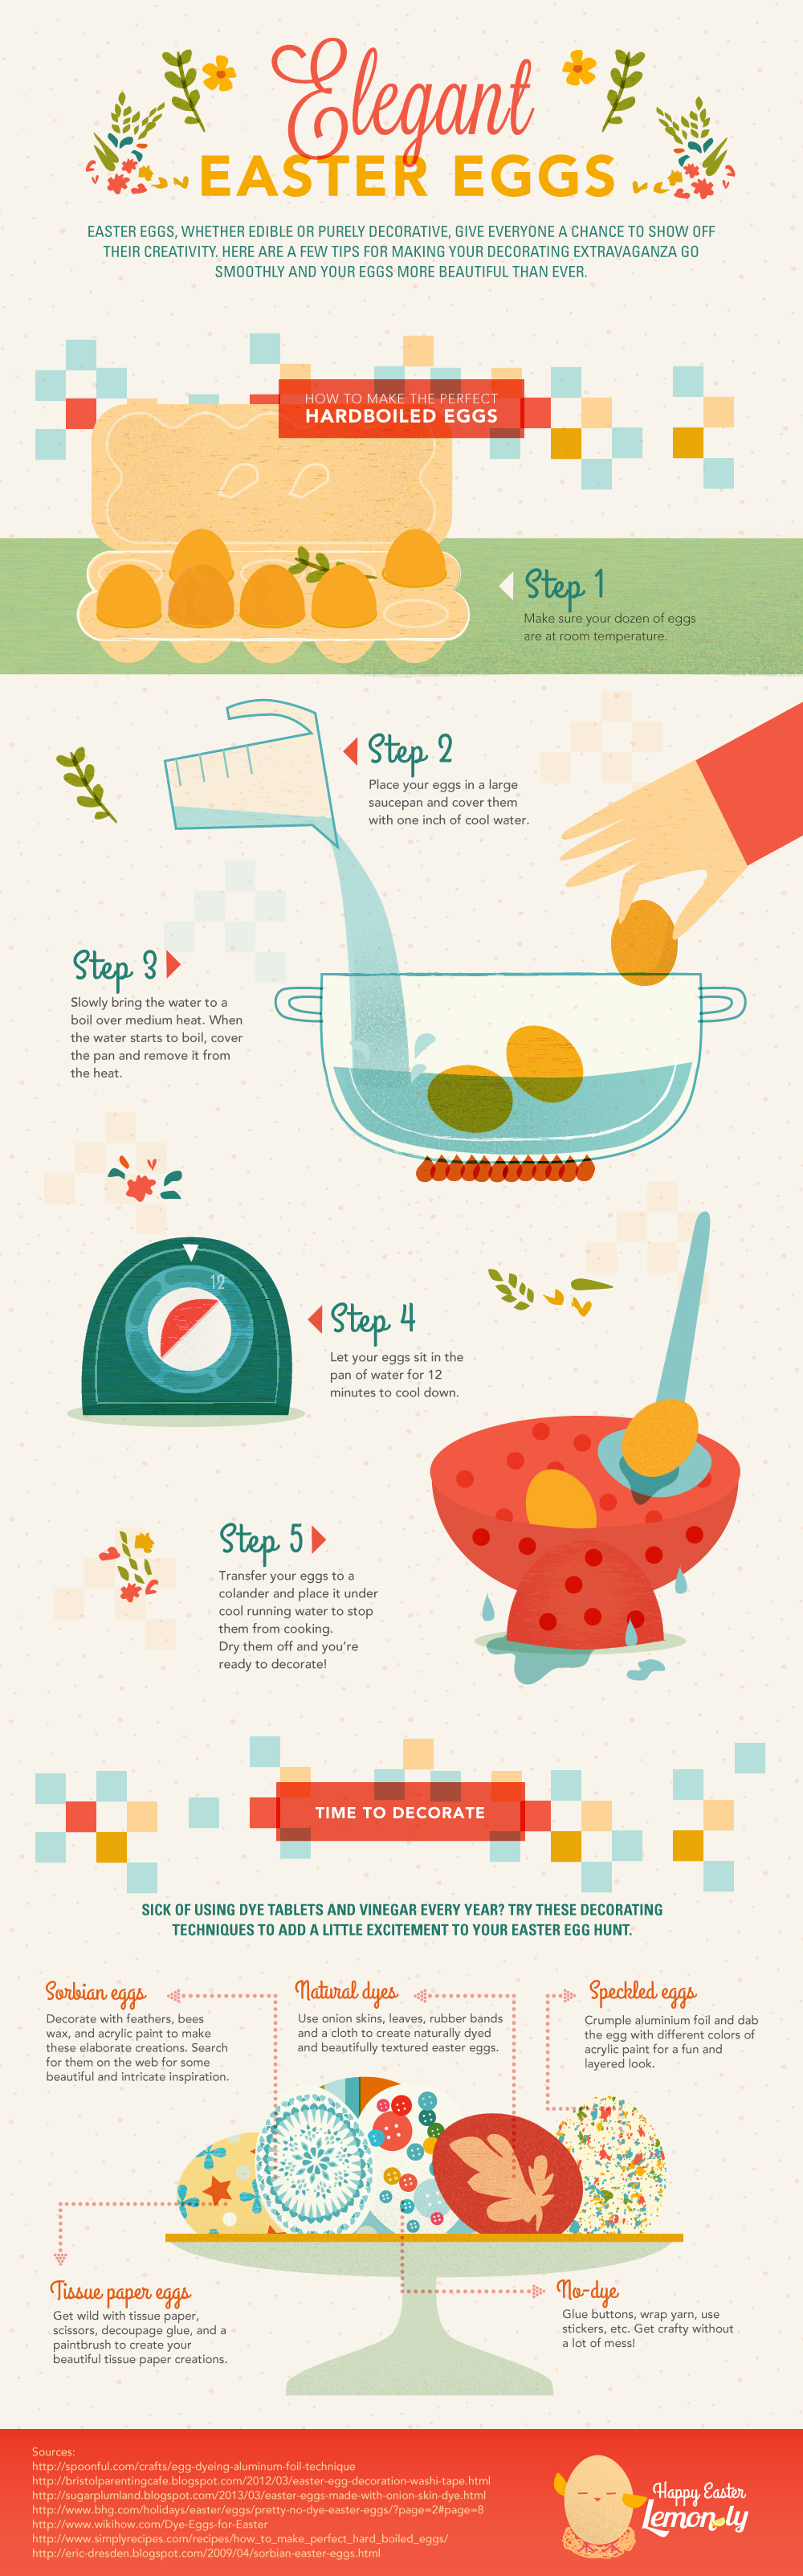 A Little Cheat Sheet For Preparing And Decorating Easter Eggs Infographic